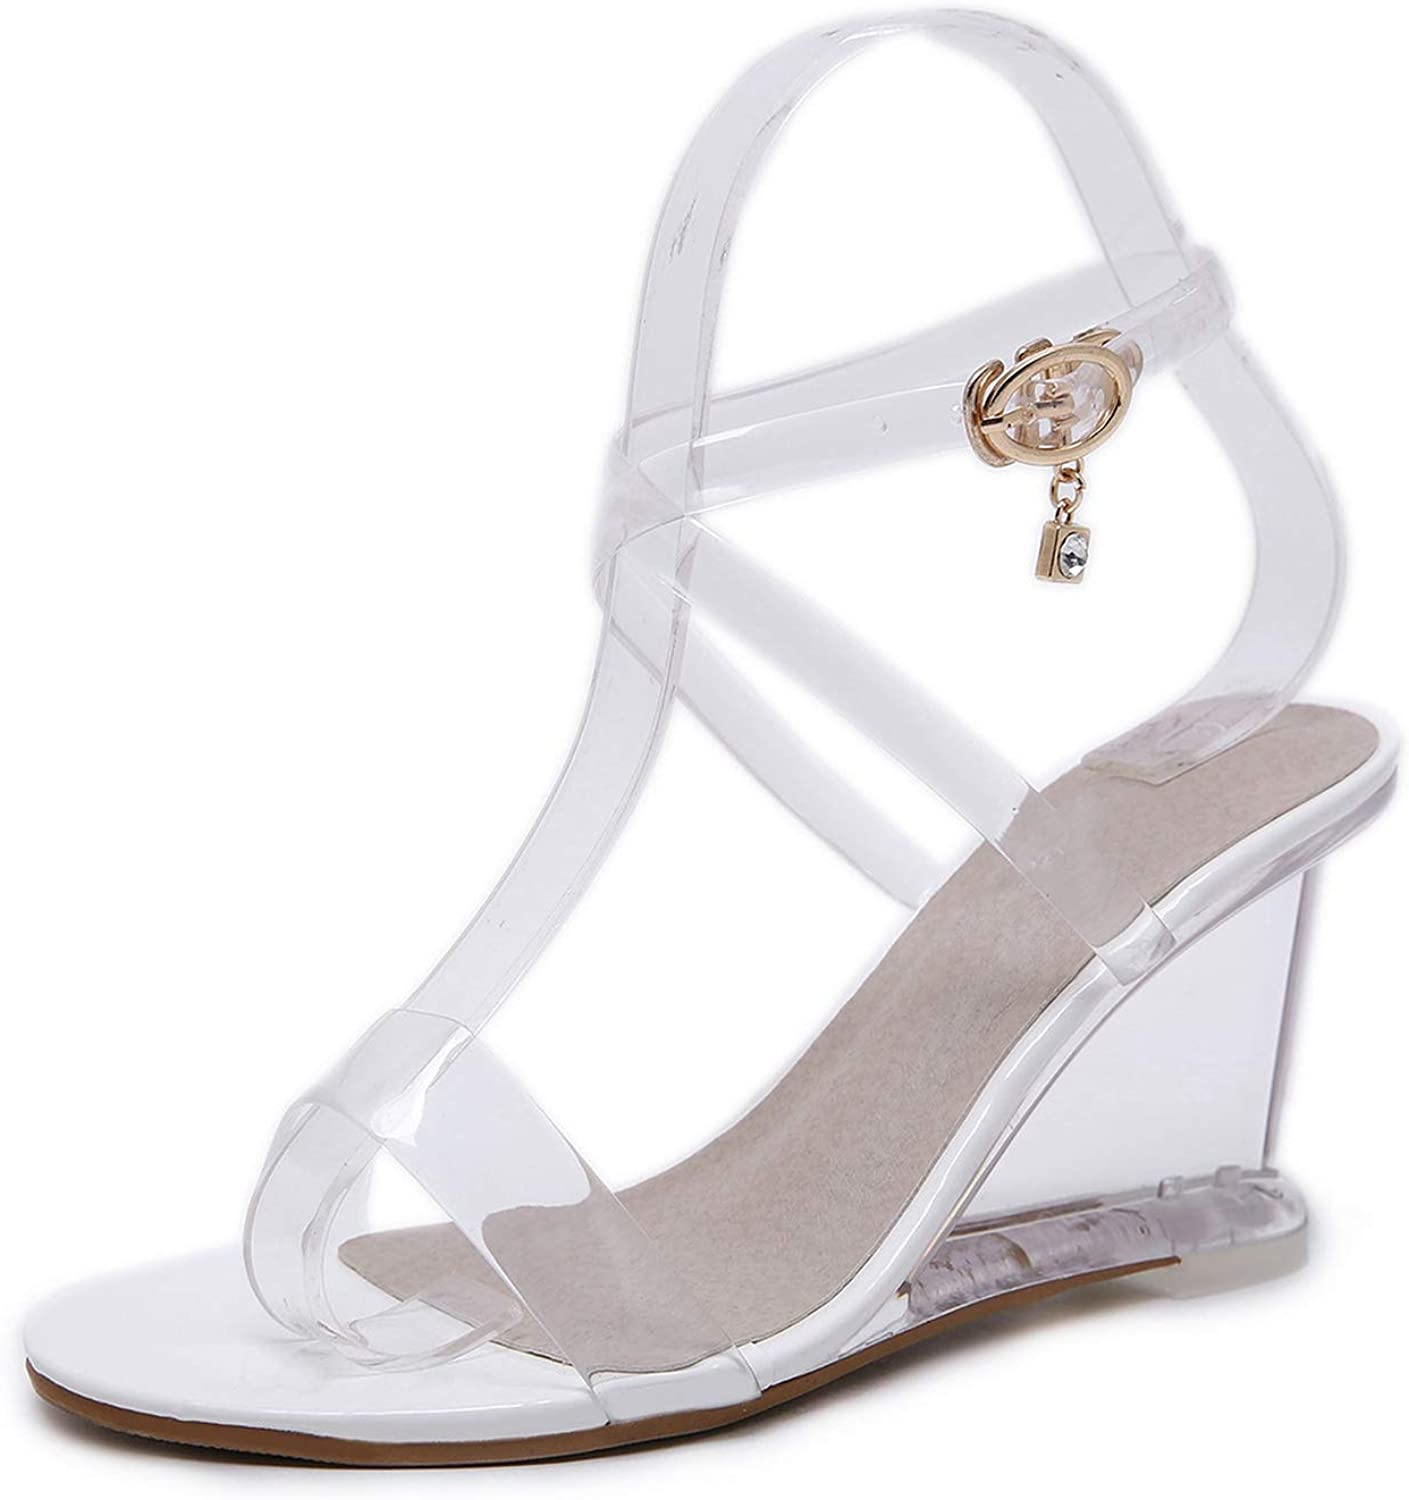 Women Sandals Crystal Heels Wedge Slipper Sexy Slopes and Sandals, Female Sandals, Summer Women's shoes Lfd-835